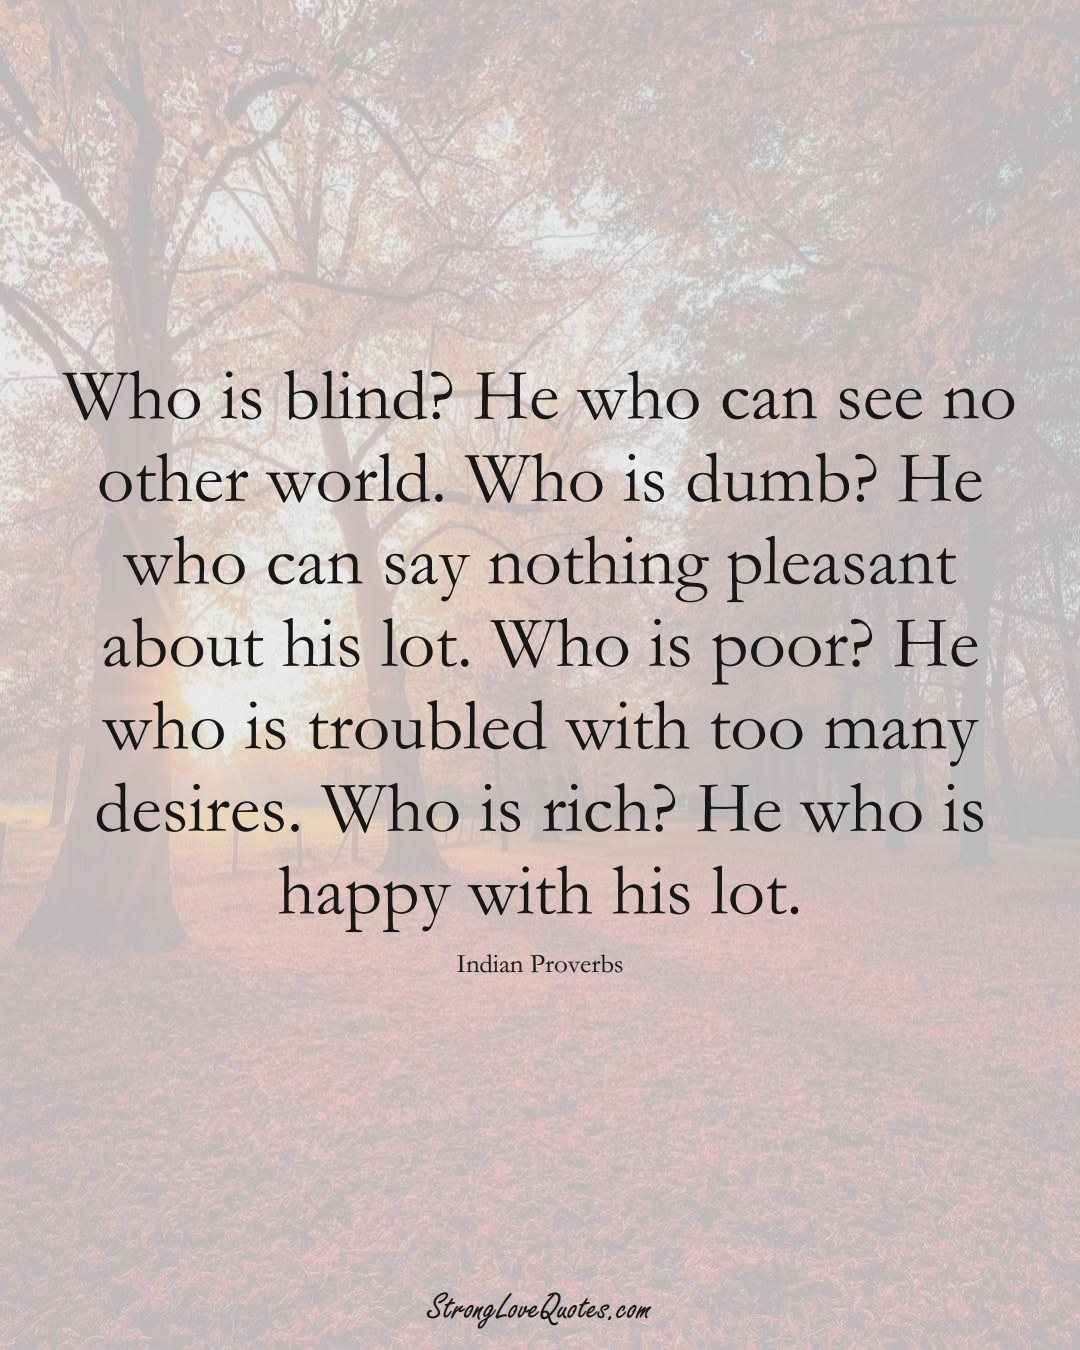 Who is blind? He who can see no other world. Who is dumb? He who can say nothing pleasant about his lot. Who is poor? He who is troubled with too many desires. Who is rich? He who is happy with his lot. (Indian Sayings);  #AsianSayings